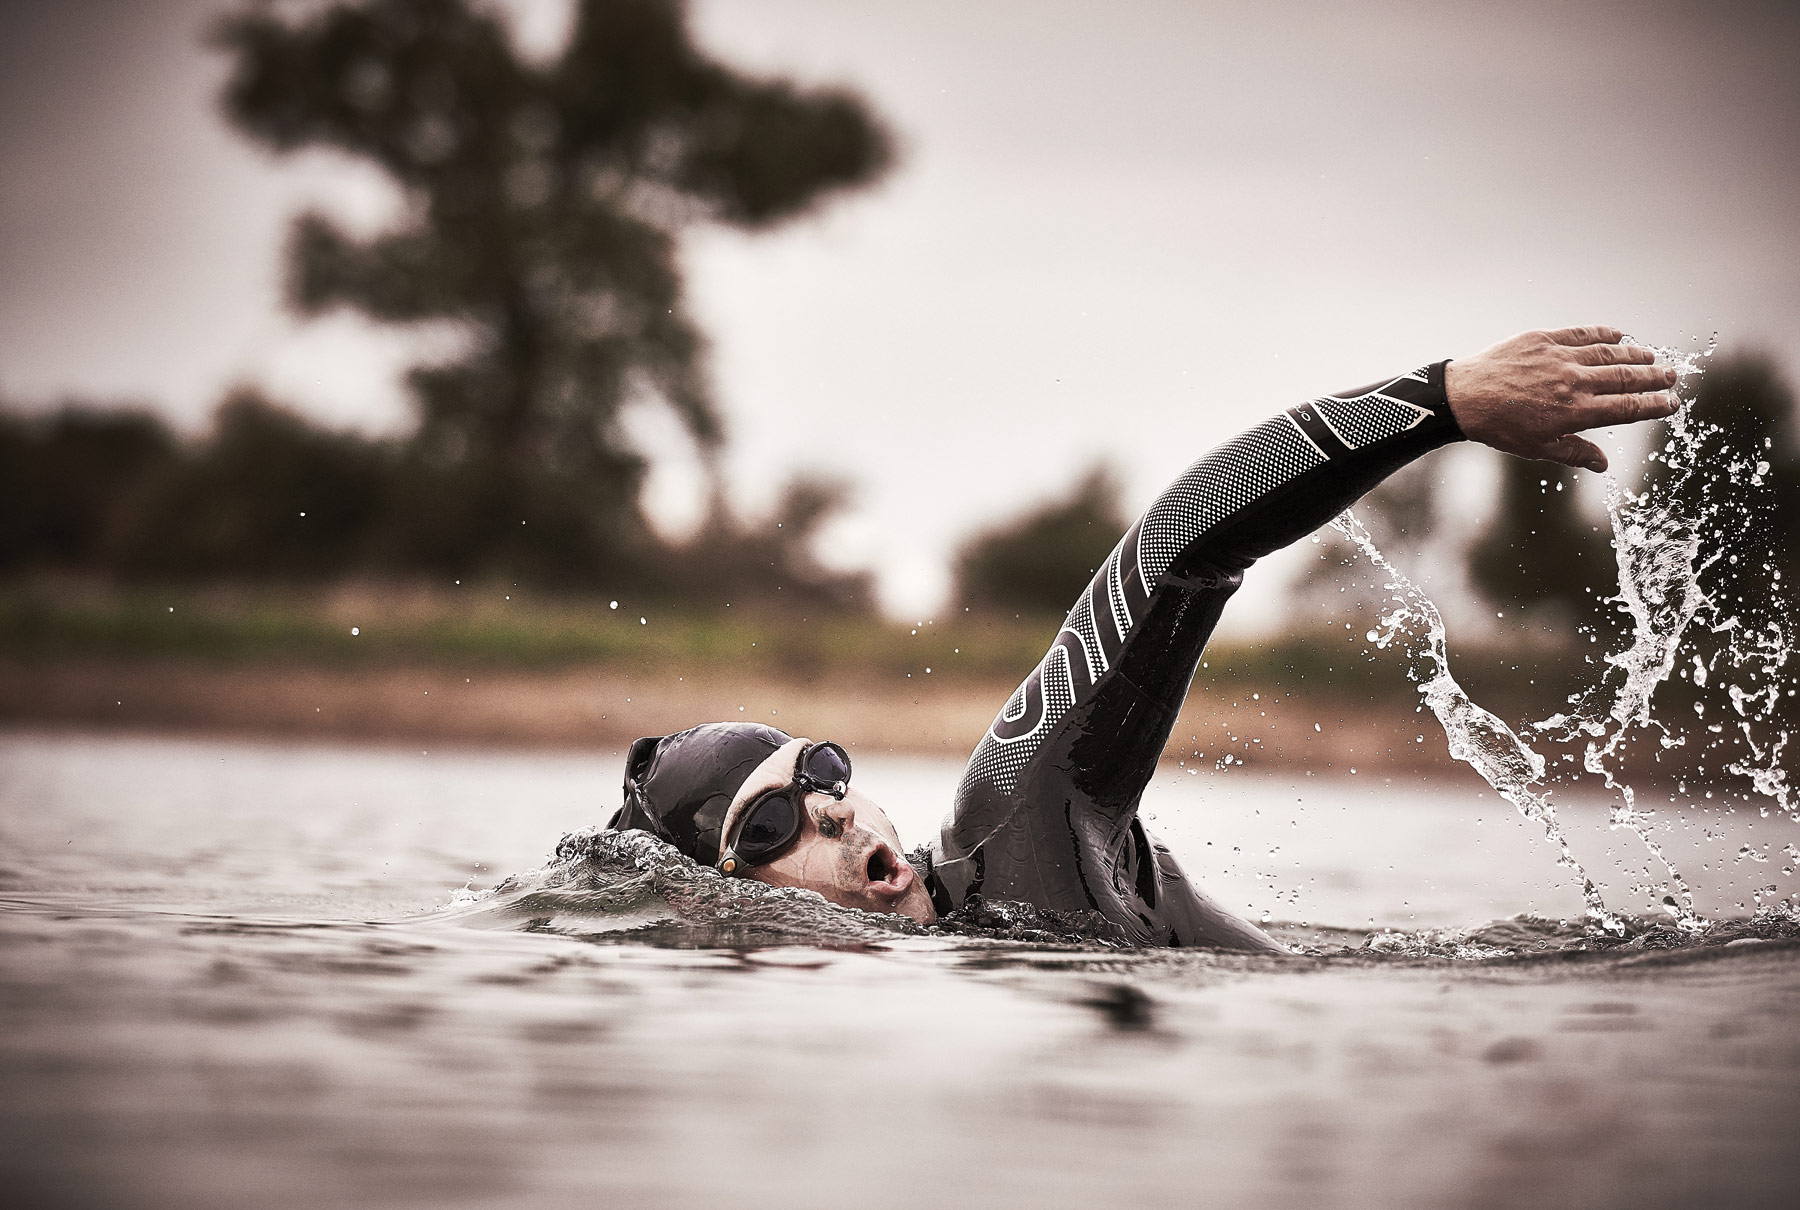 Swimming freestyle in open water